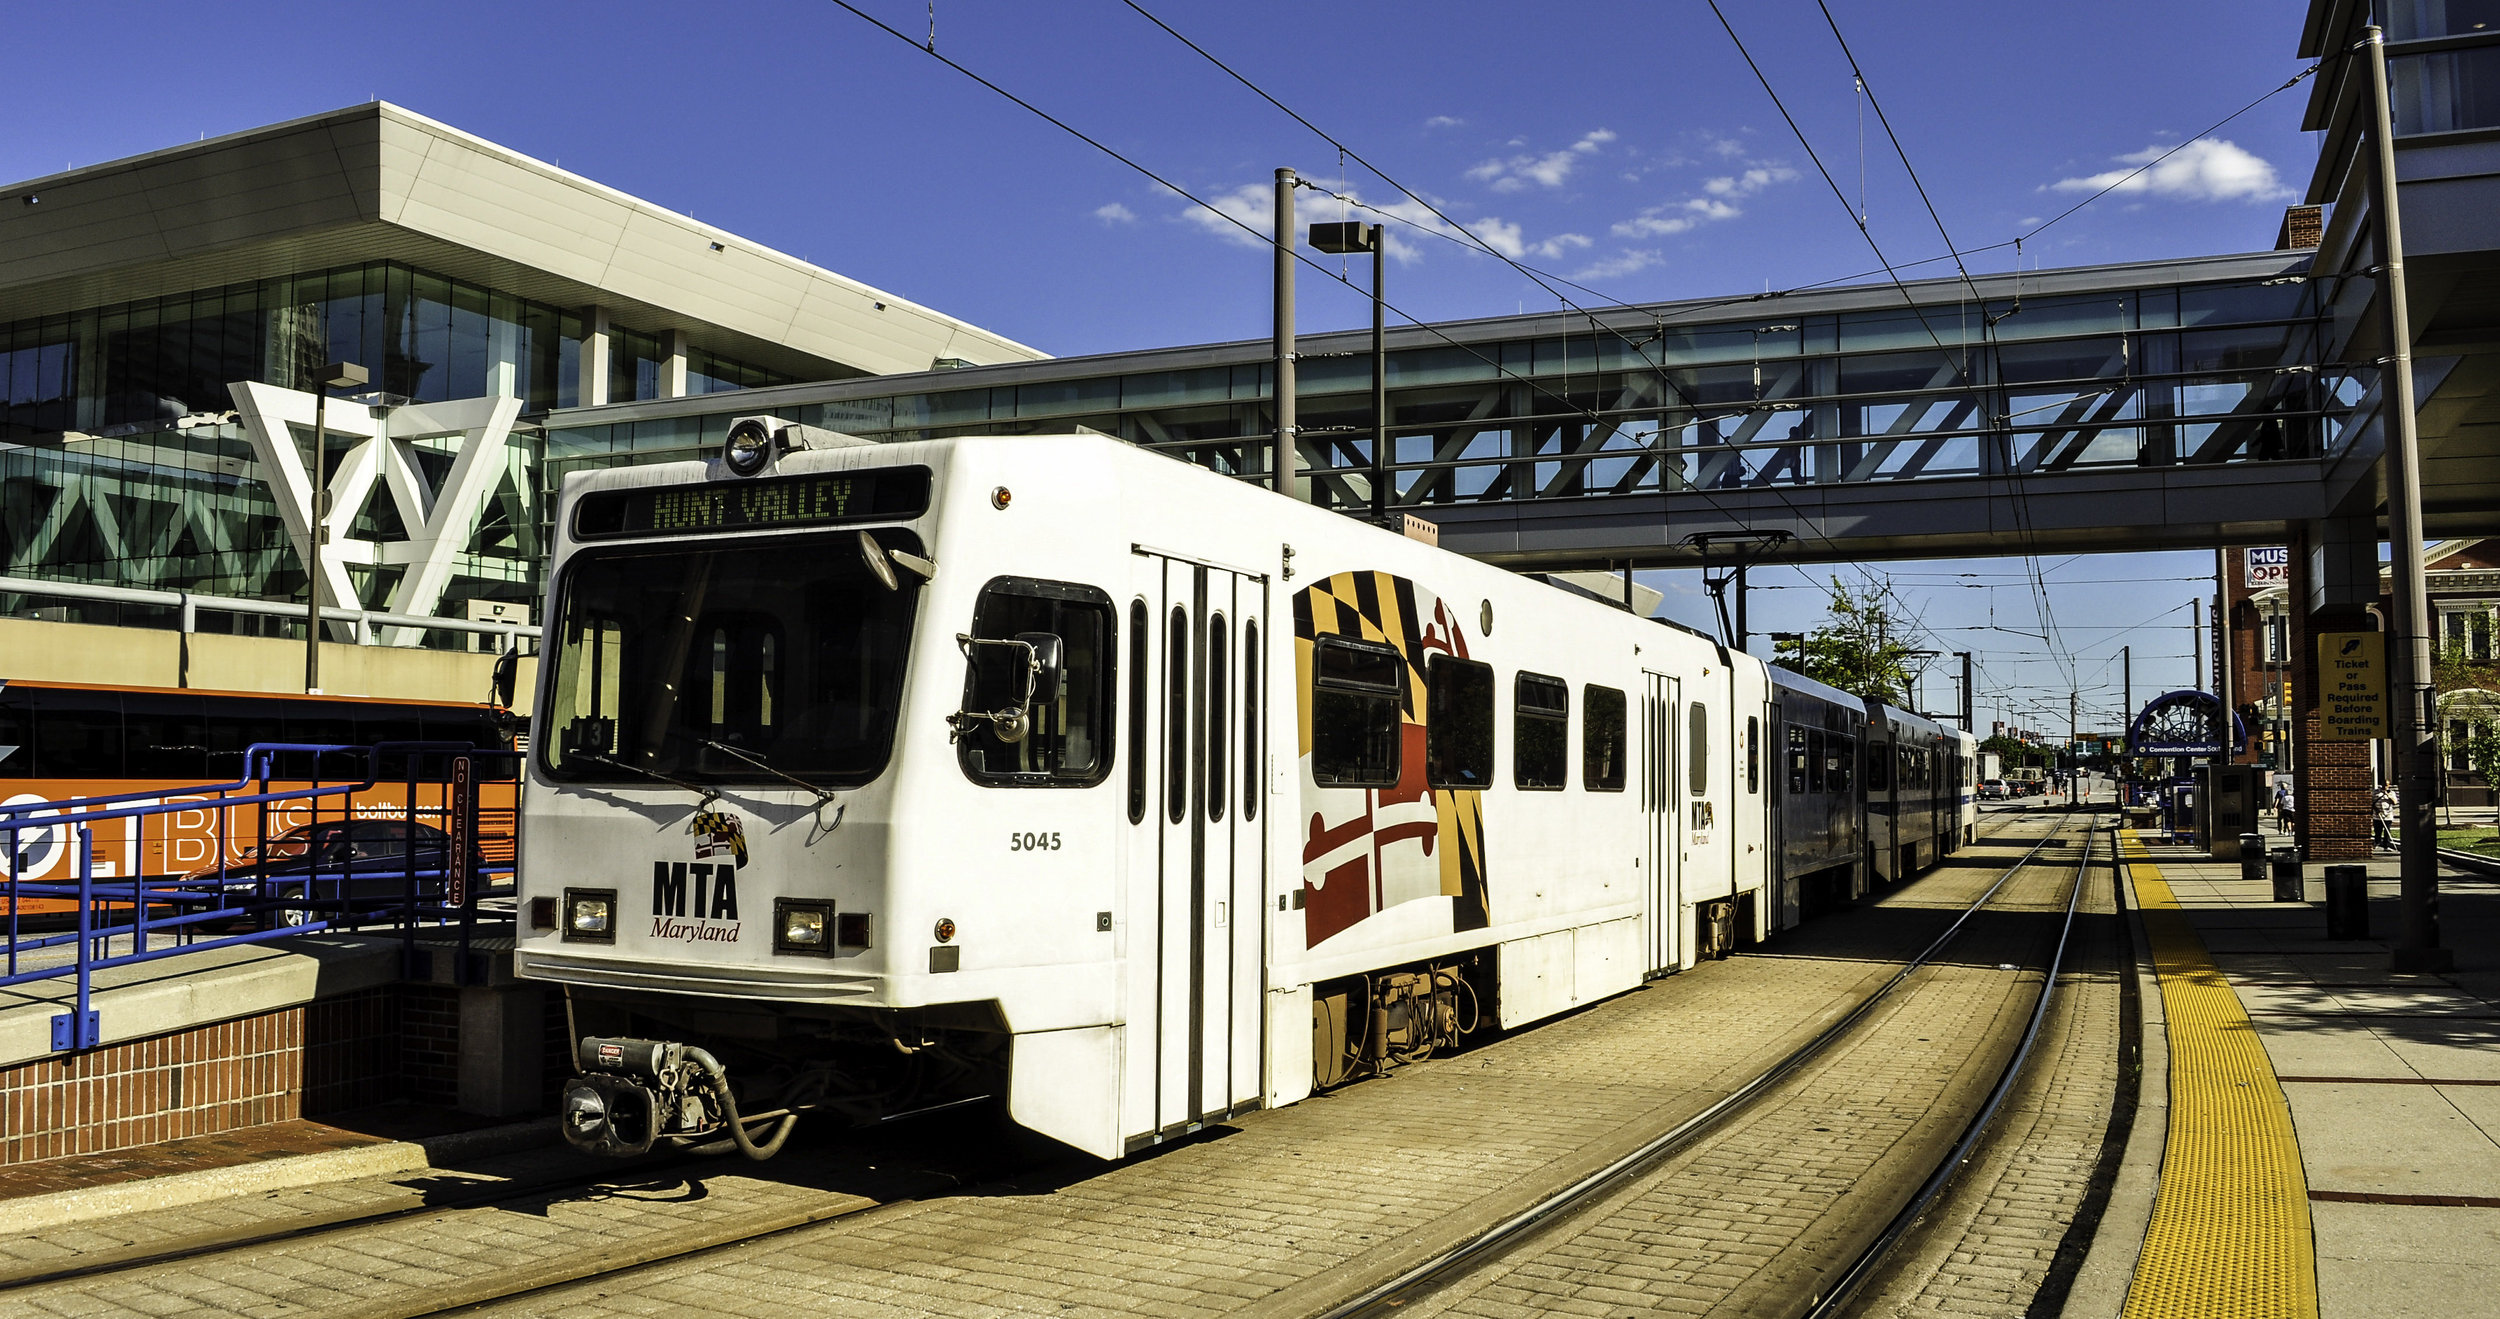 A Light RailLink car at Baltimore, Maryland's Convention Center station ( Image )